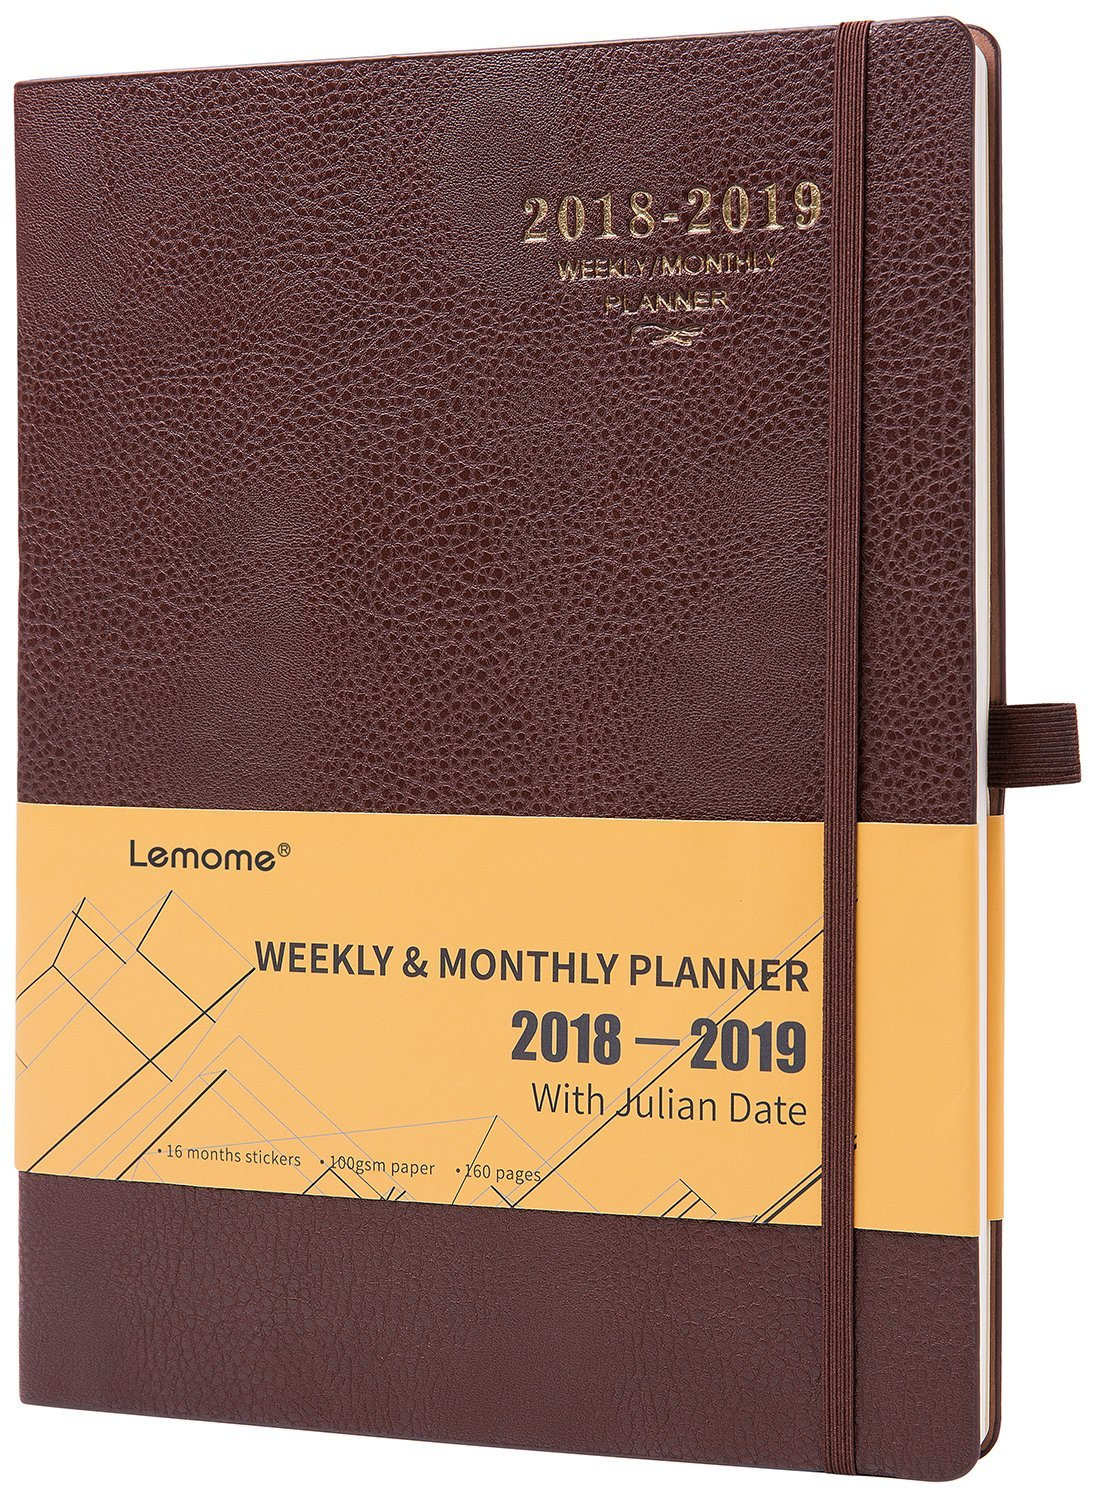 Planner 2018-2019 with Pen Holder -Academic Weekly, Monthly and Yearly Planner. Thick Paper to Achieve Your Goals & Improve Productivity, 8.5'' x 11'', Back Pocket with Julian Date